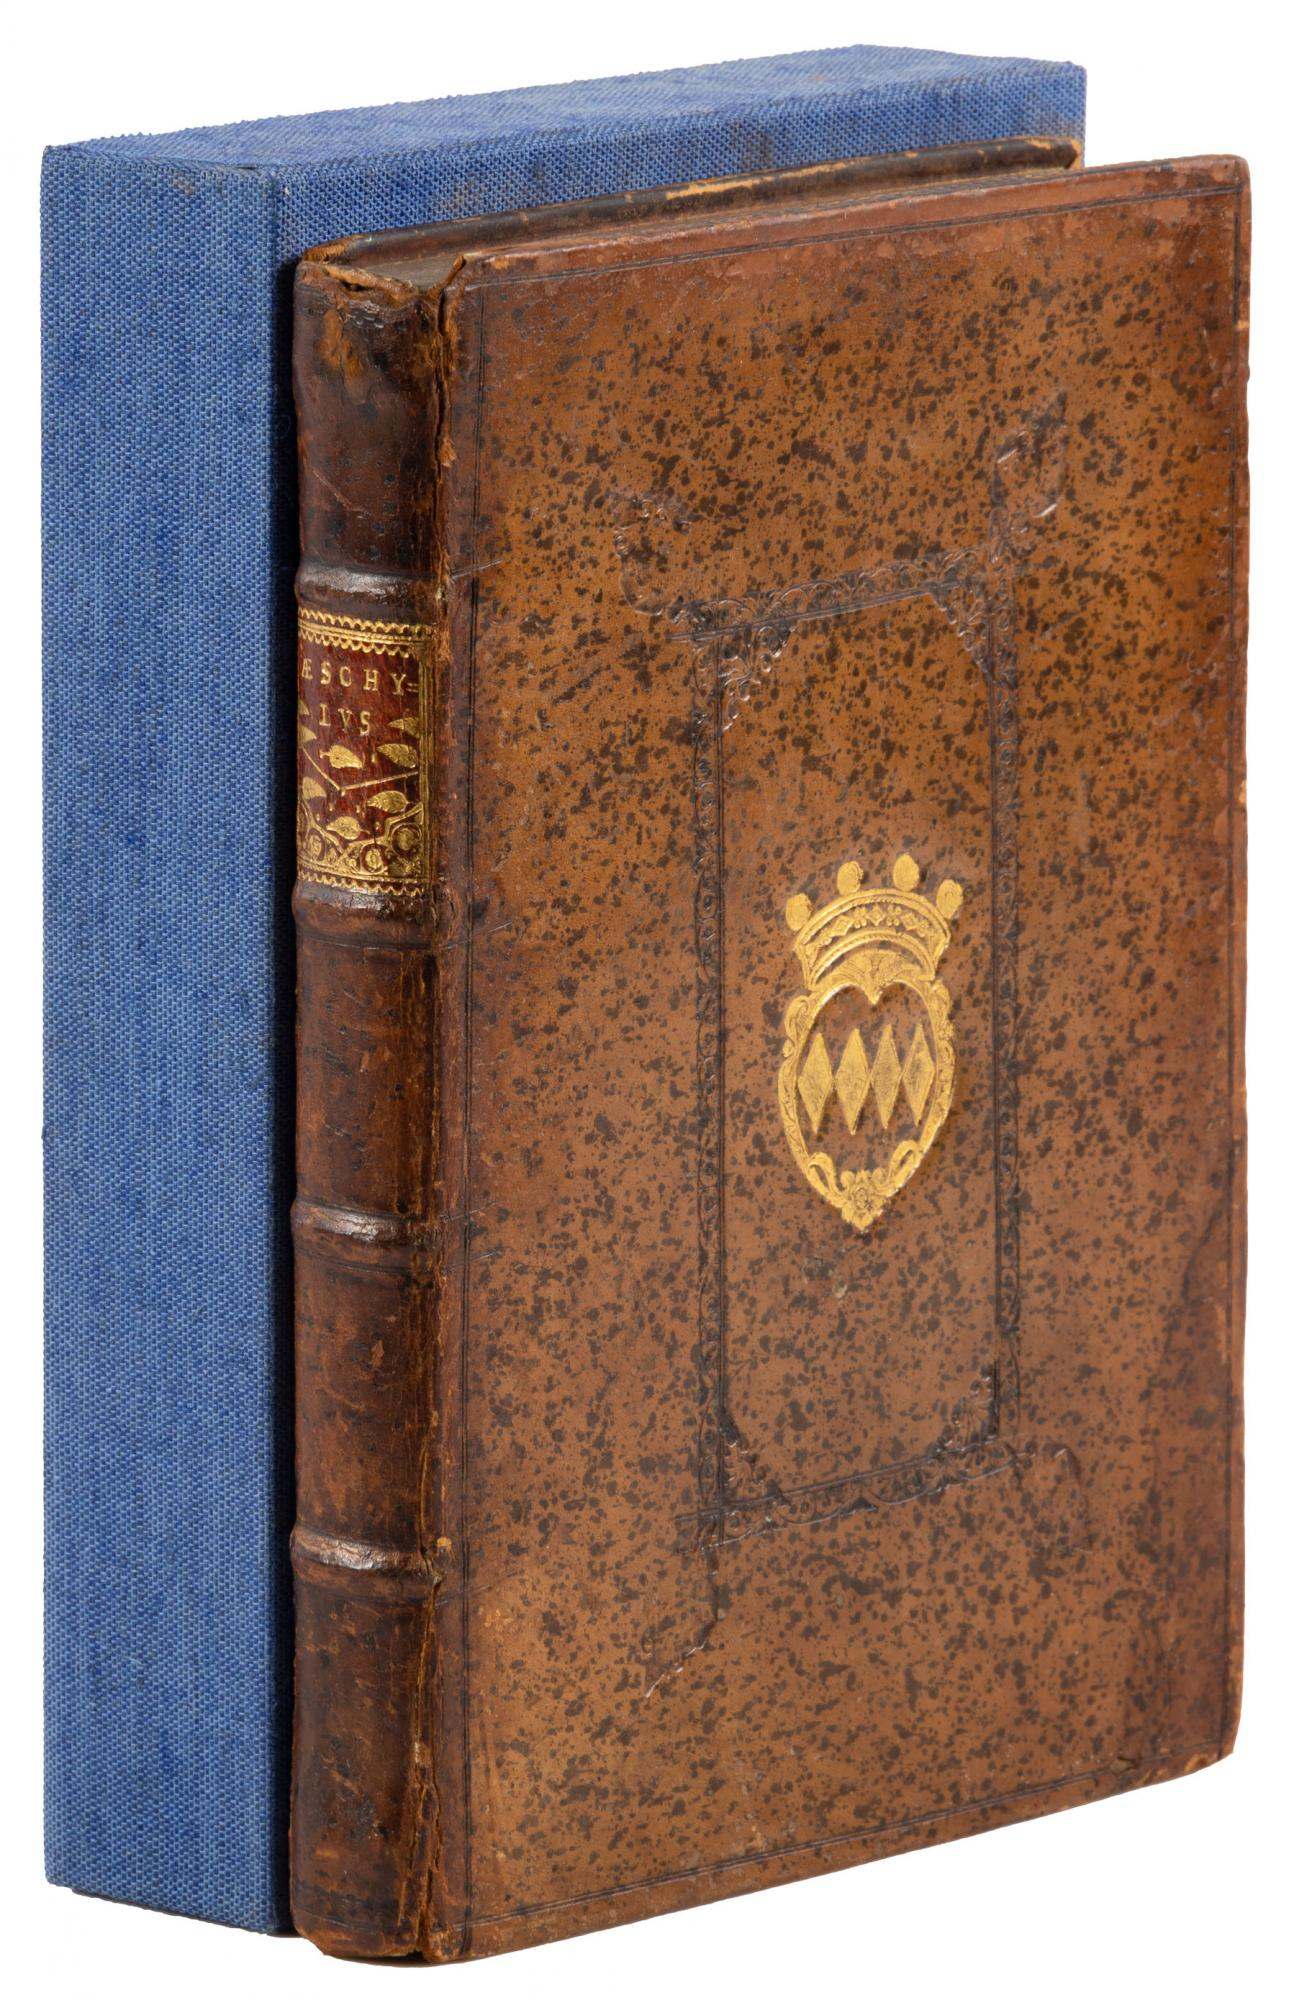 Antiquarian Books with Manuscripts and Food & Drink